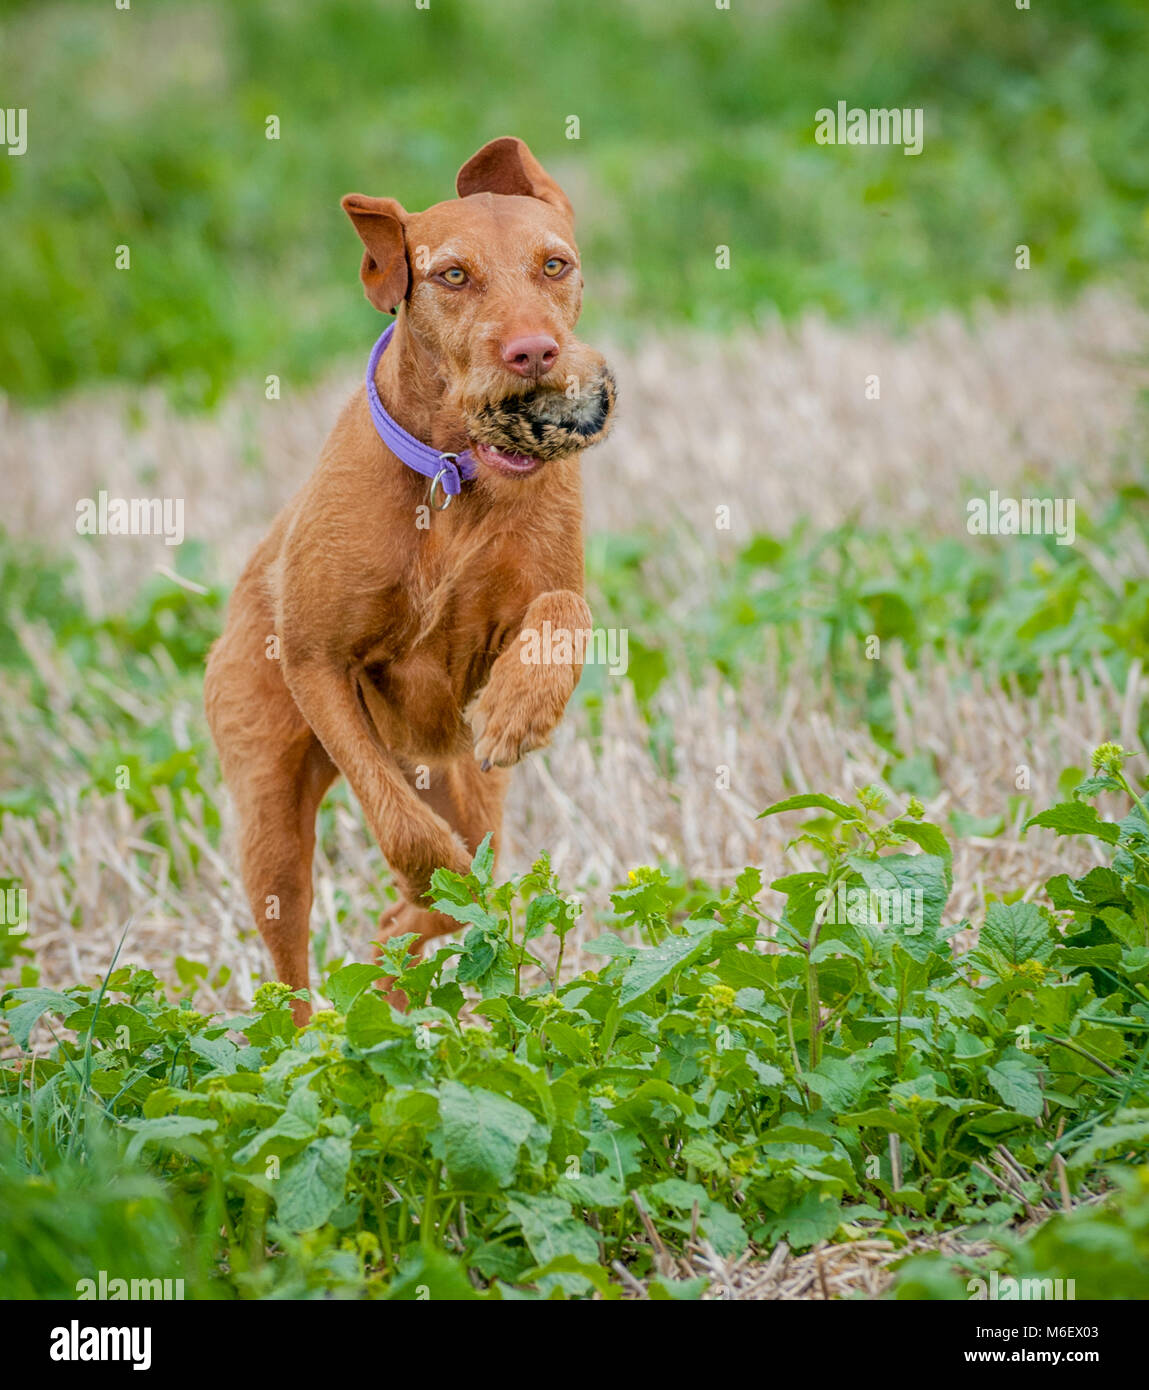 Wirehaired Vizsla dog running in a field with a training dummy in its mouth - Stock Image